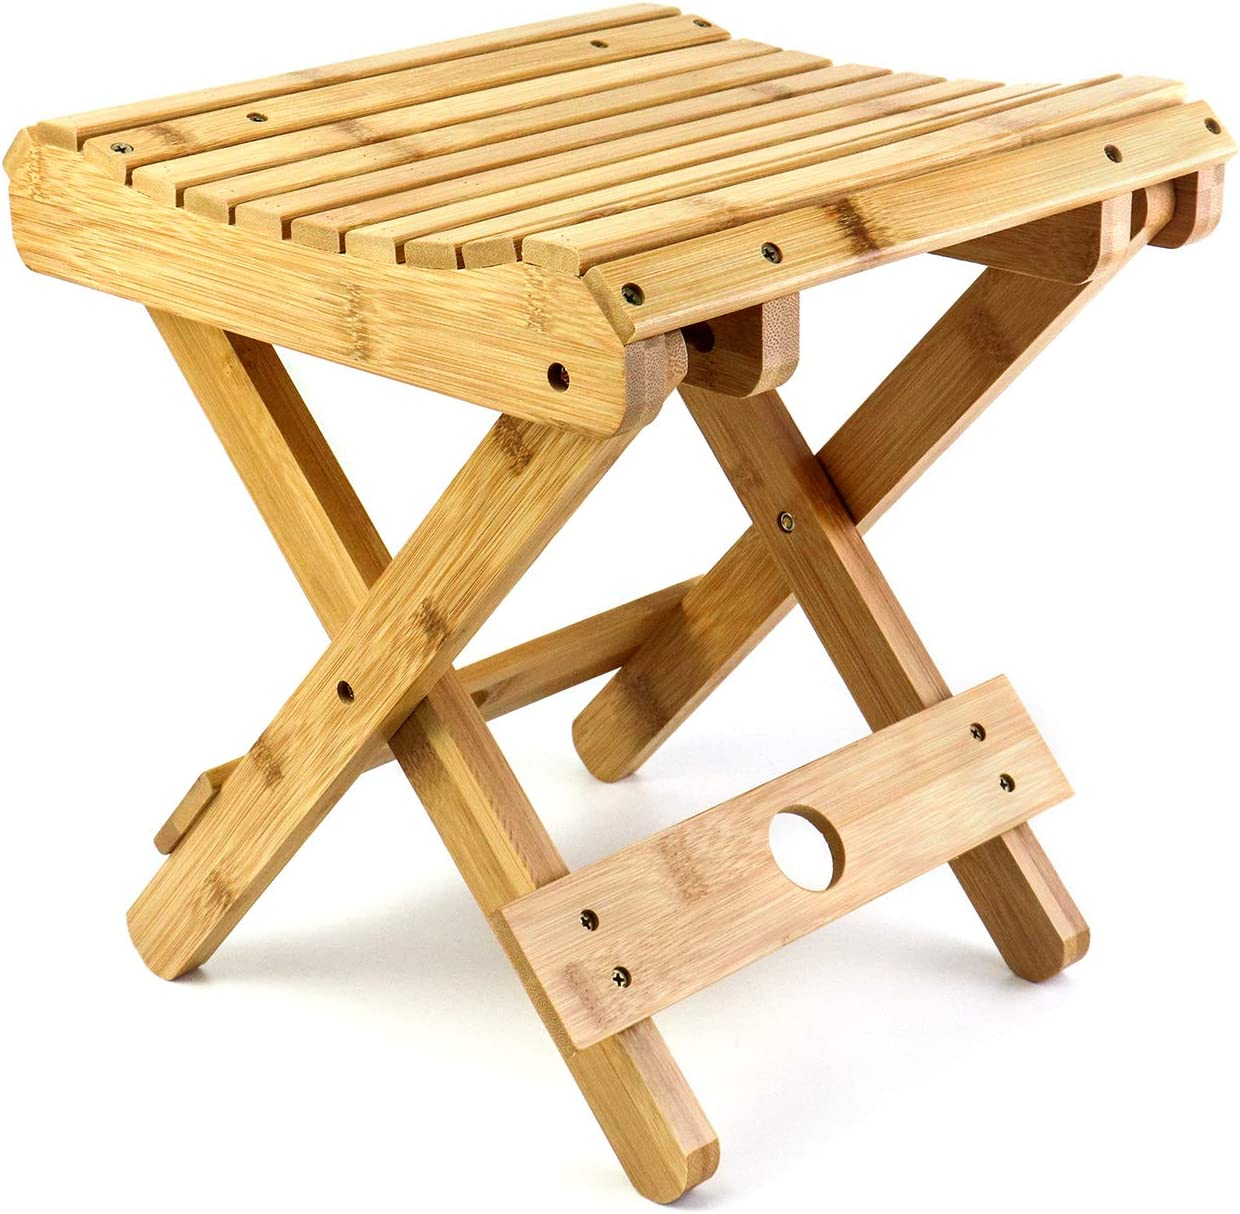 QWORK Folding Gorgeous Bamboo Step Stool Opening large release sale Fully Assembled Small Woo Chair